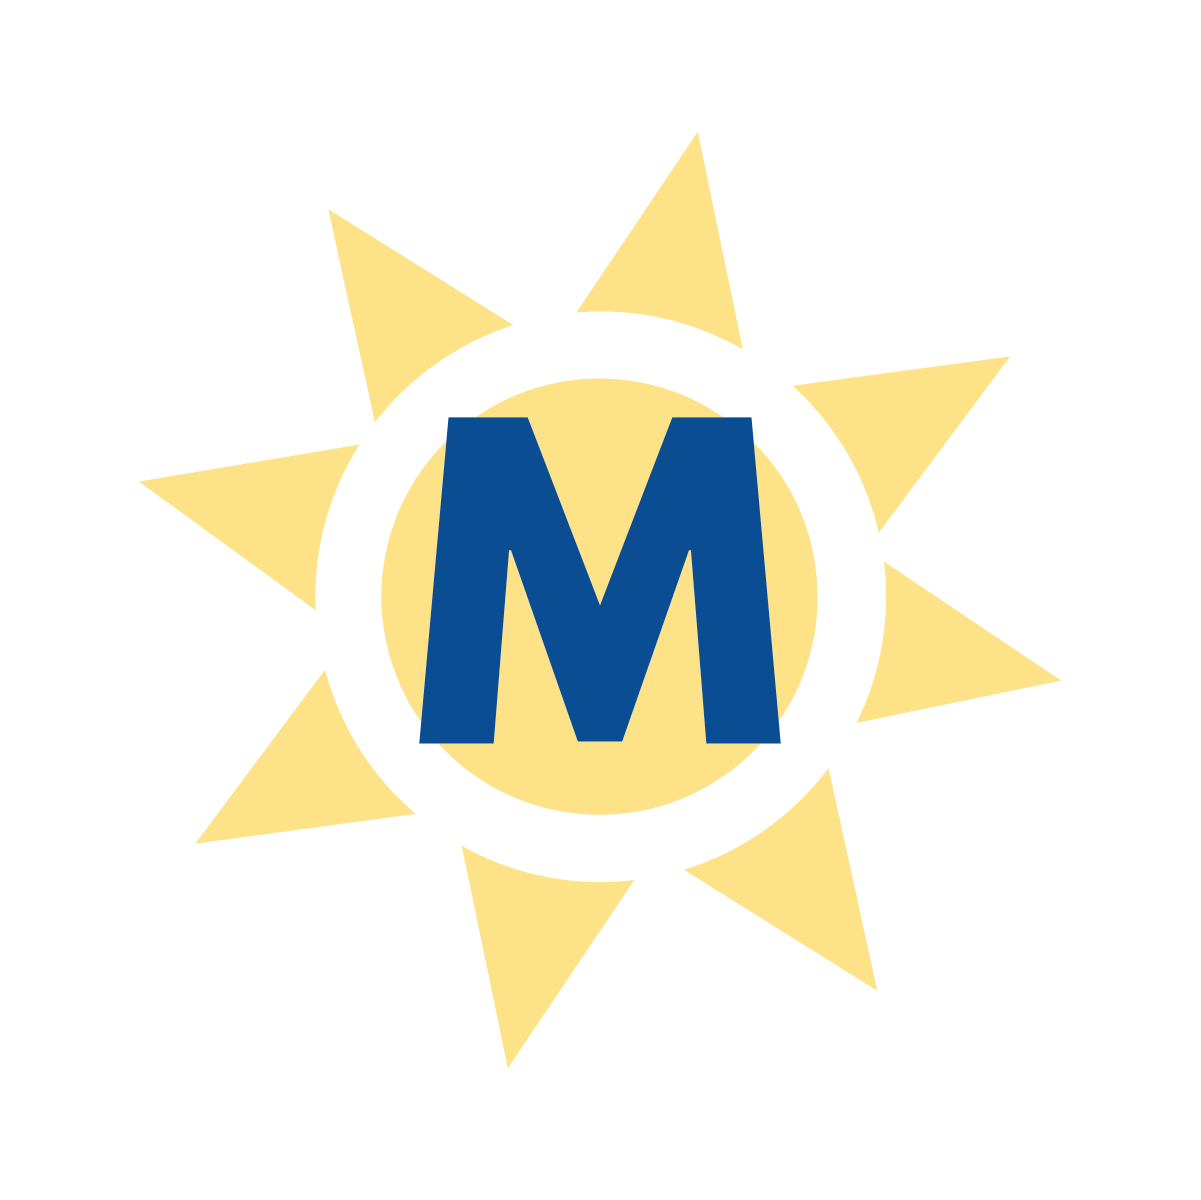 Brand_Mbrook2_Logo.png